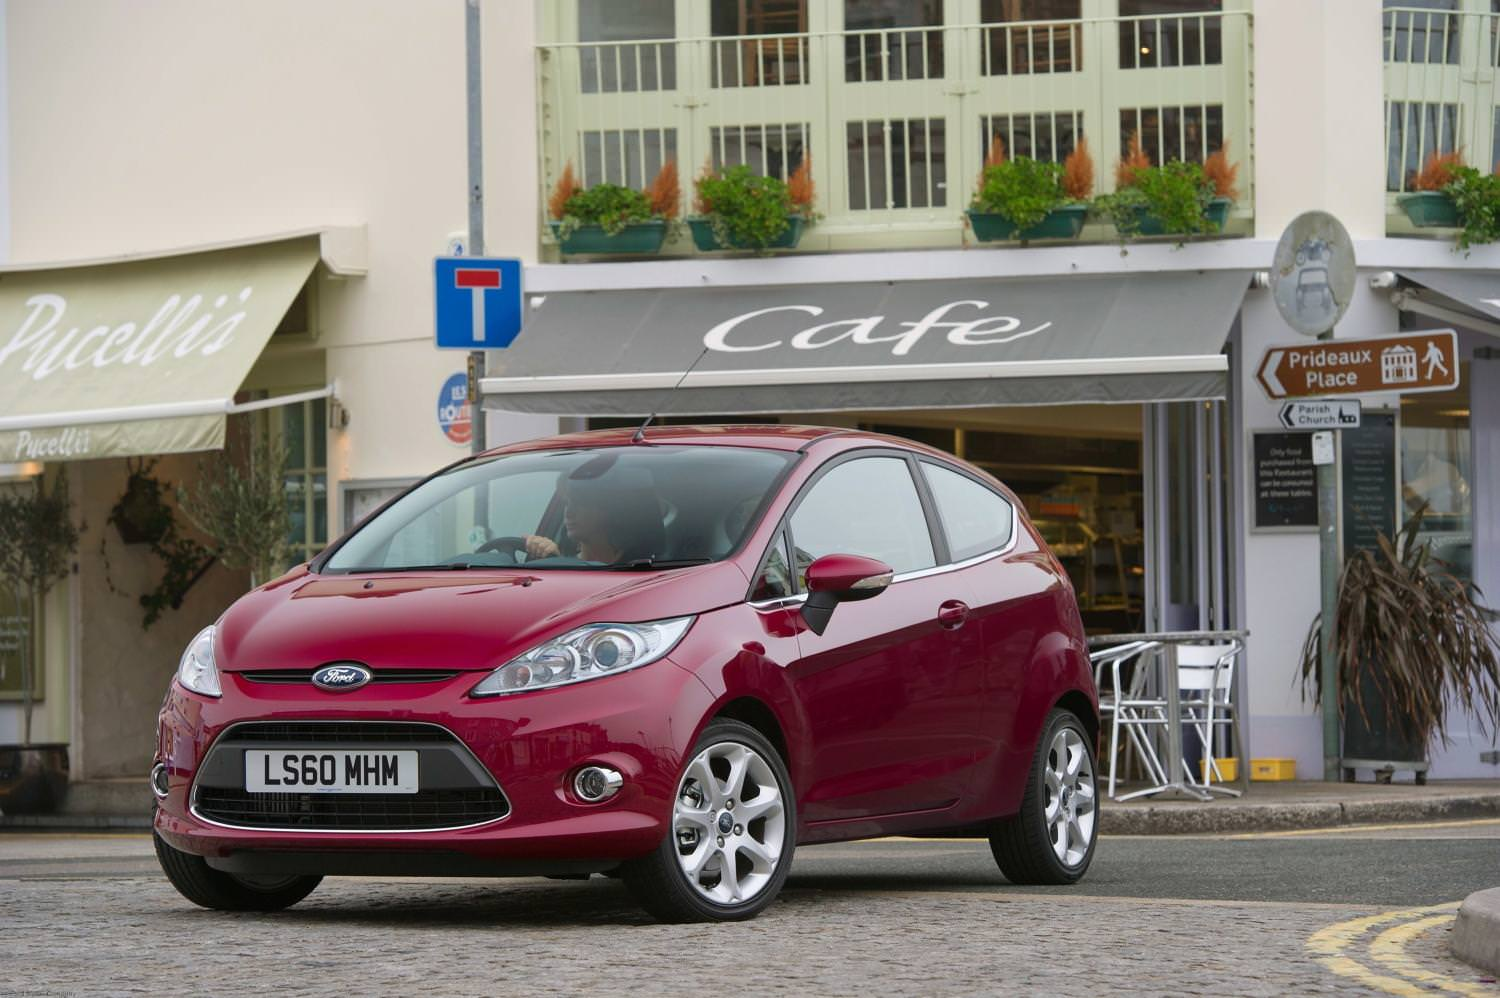 Ford Fiesta buyers guide